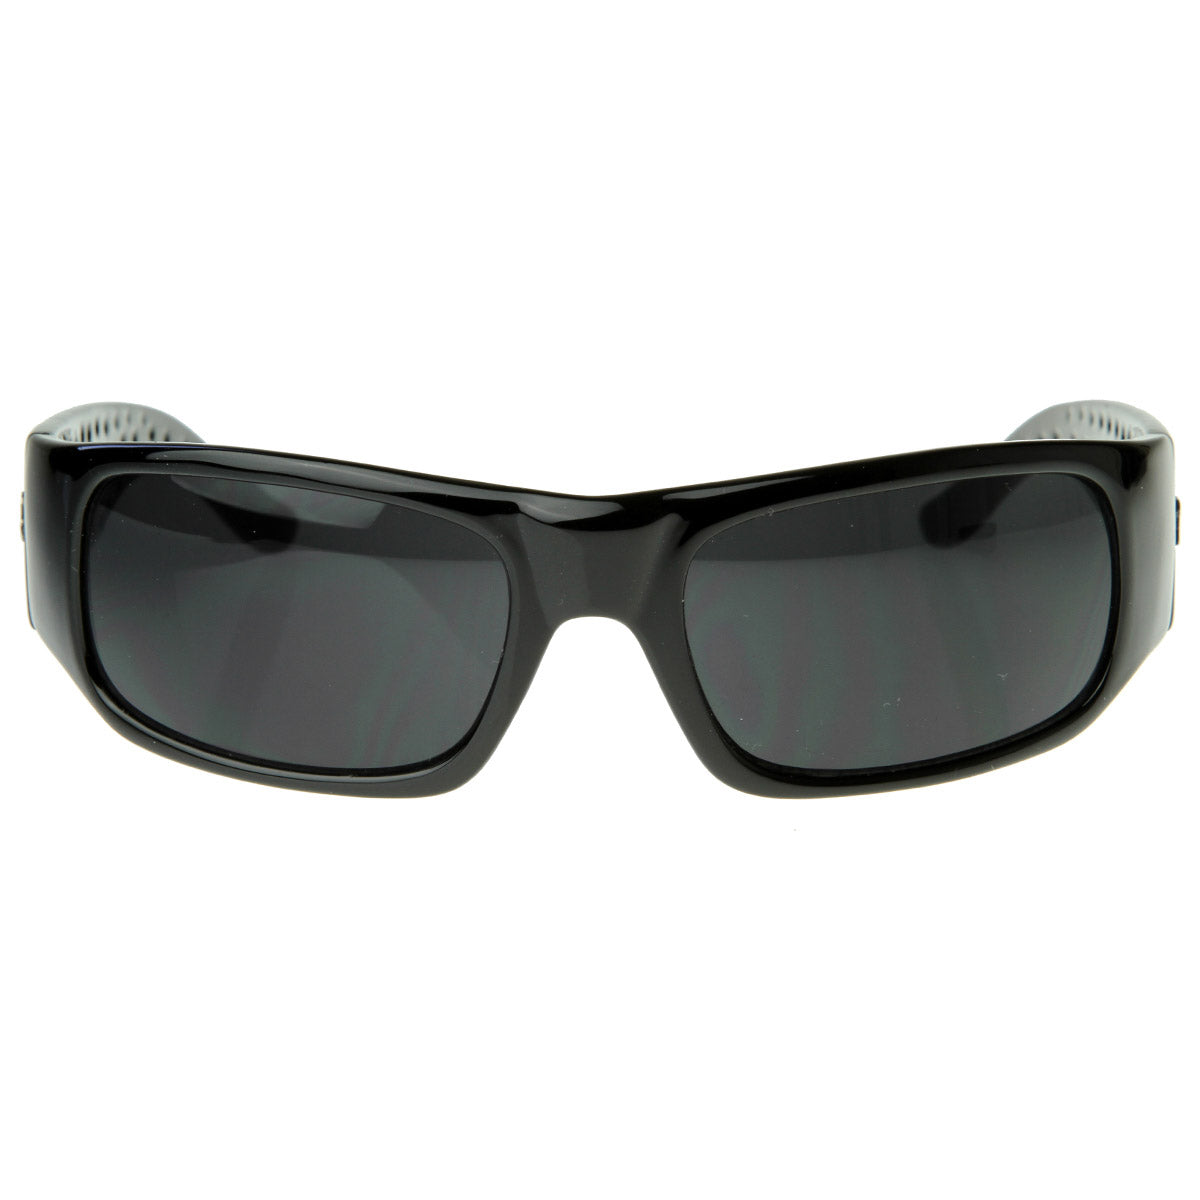 Hard Core Shades Classic Gangsta Locs Sunglasses - sunglass.la